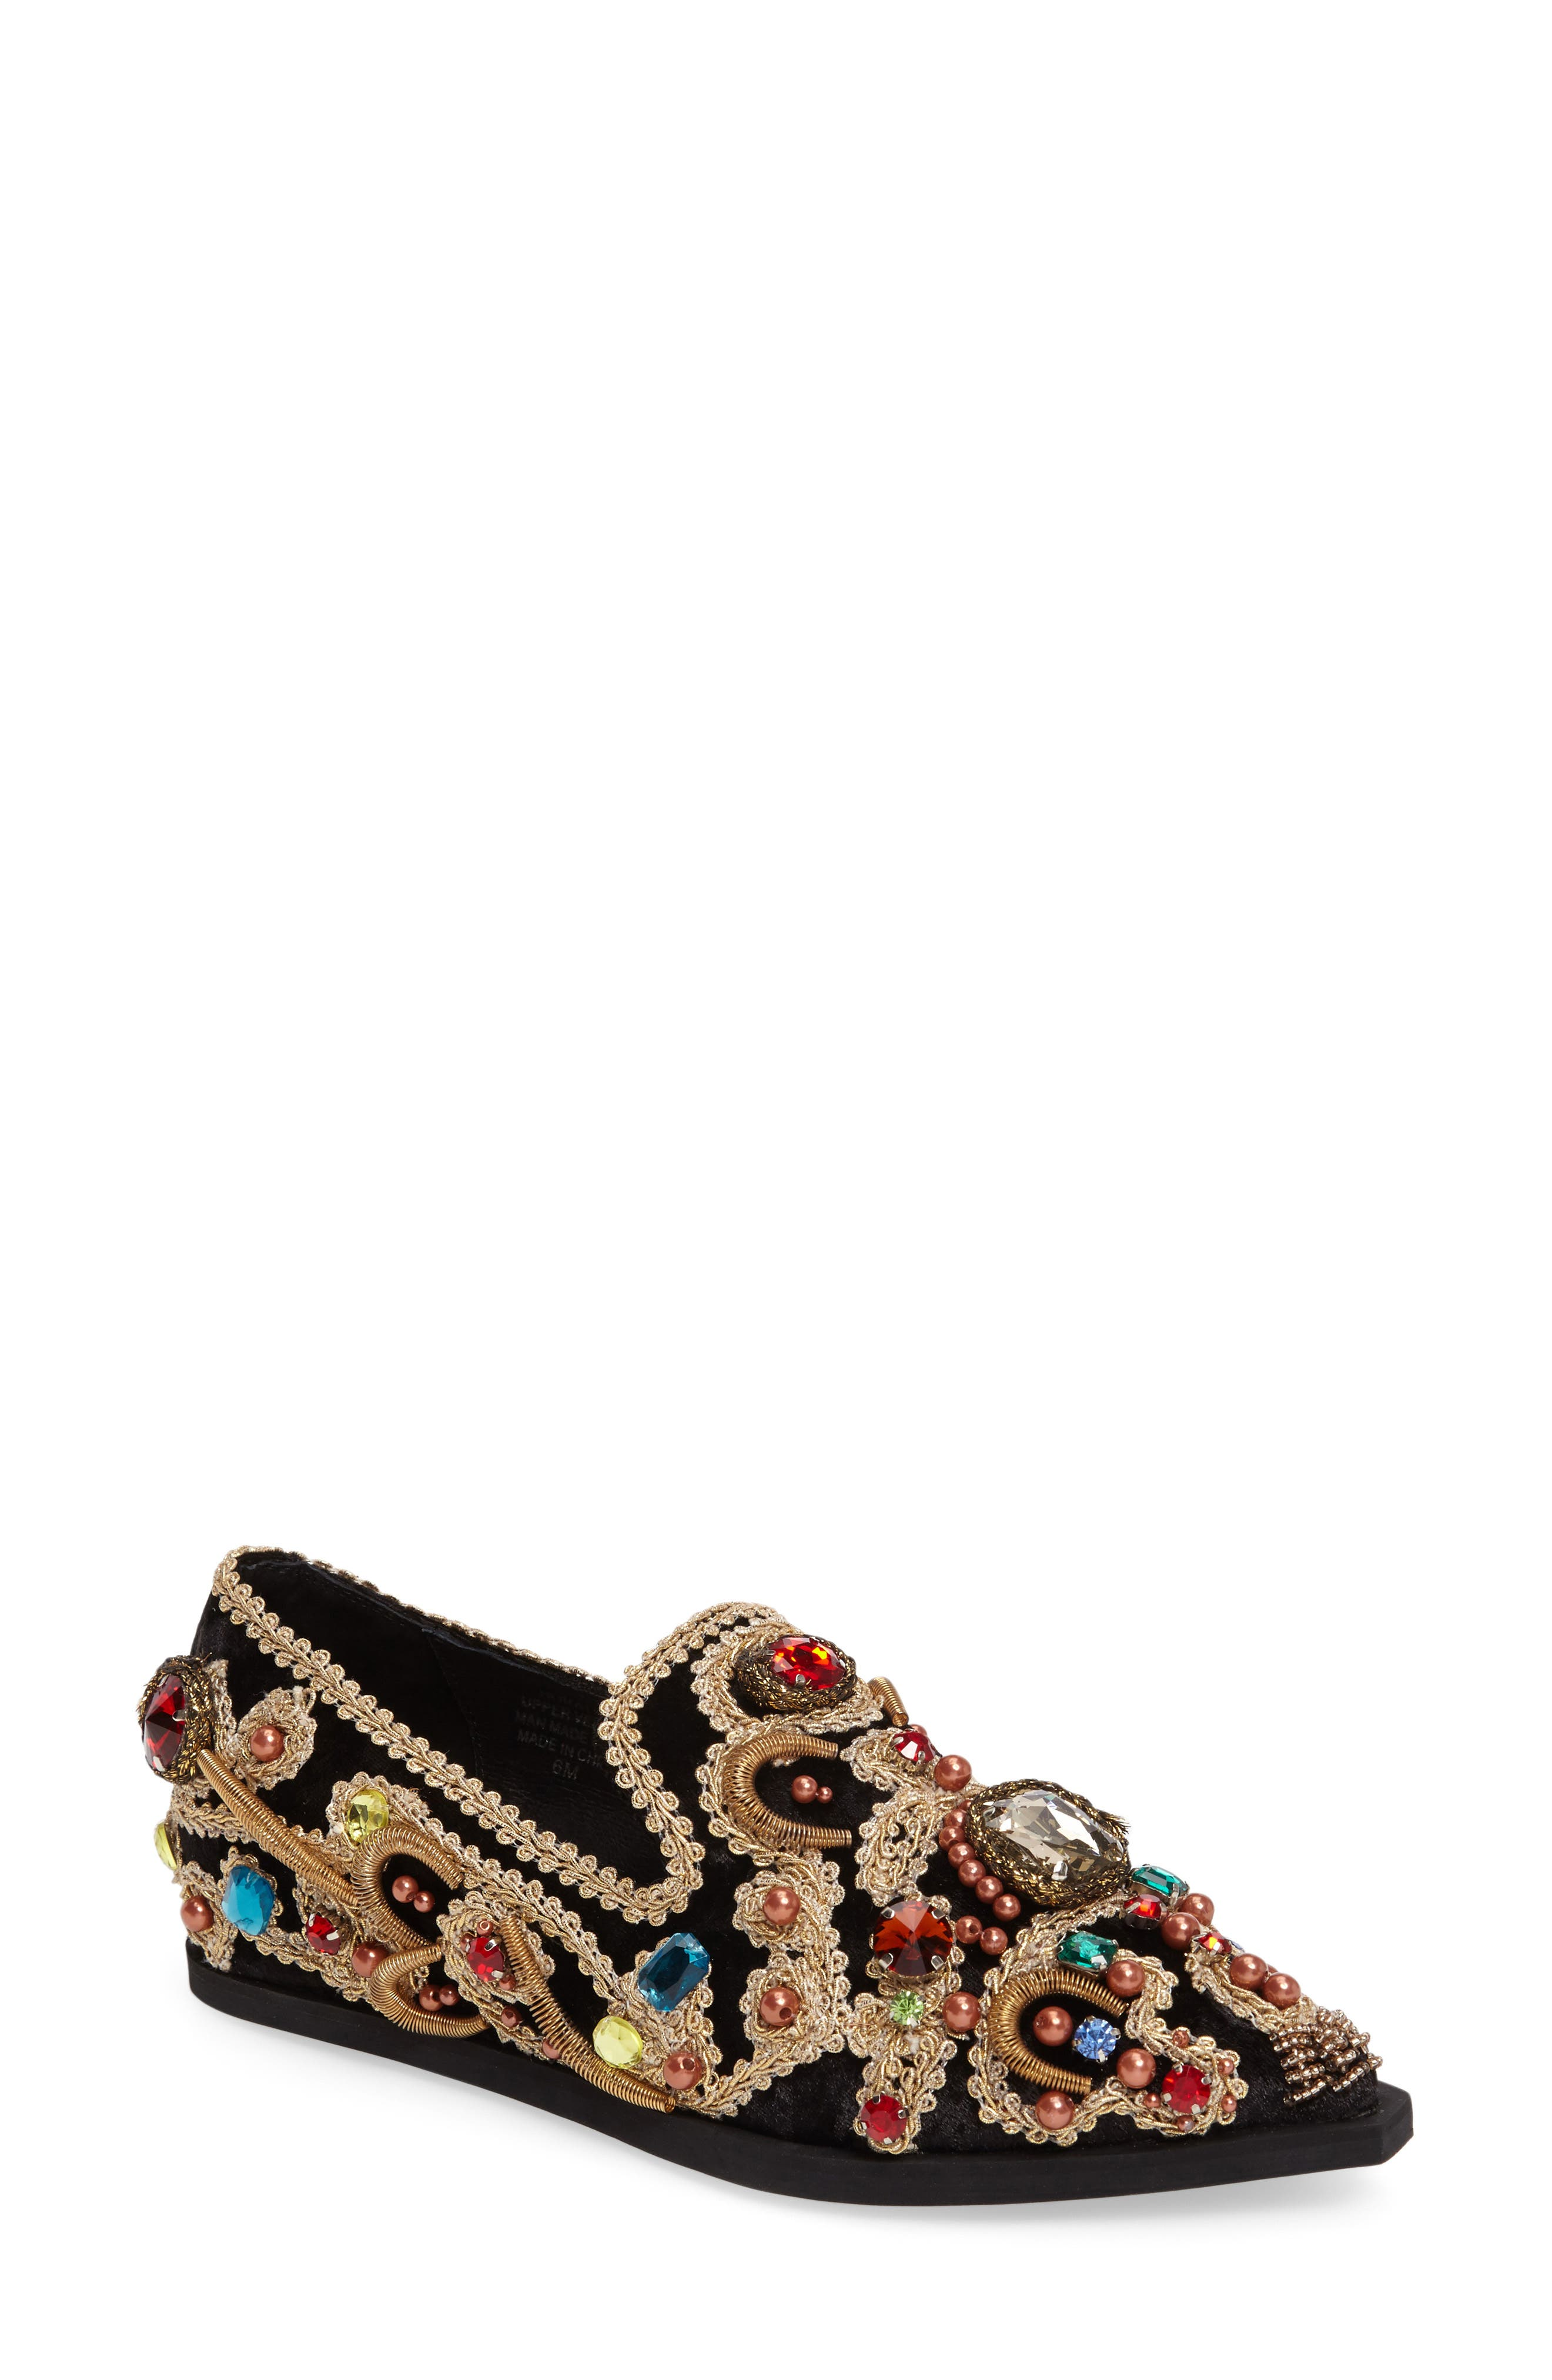 Horatio Venetian Loafer,                         Main,                         color, 001